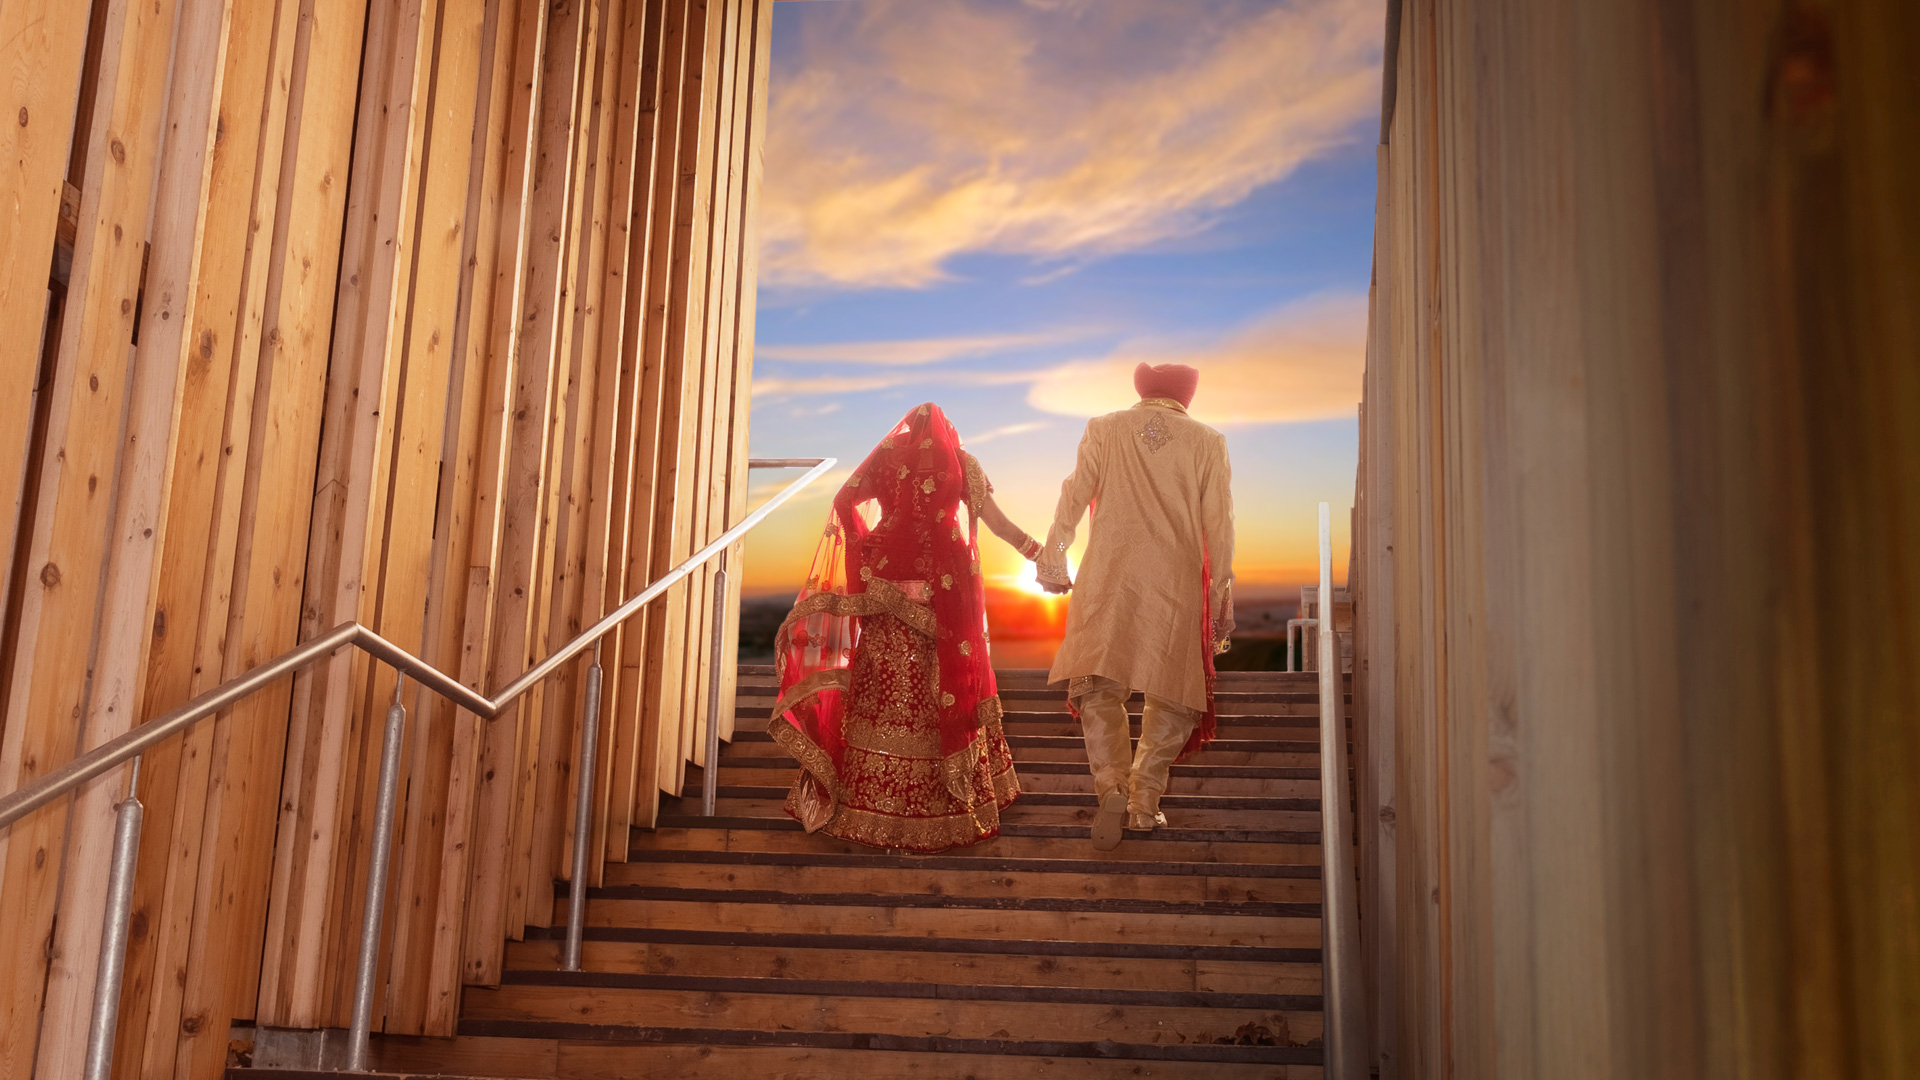 epicskypictures_epic_photography_toronto_love_weddings_social_events_sikh_ceremony_photo_just_married_sunset_amazing_picture_pictures_sky_hindu_chicago_web